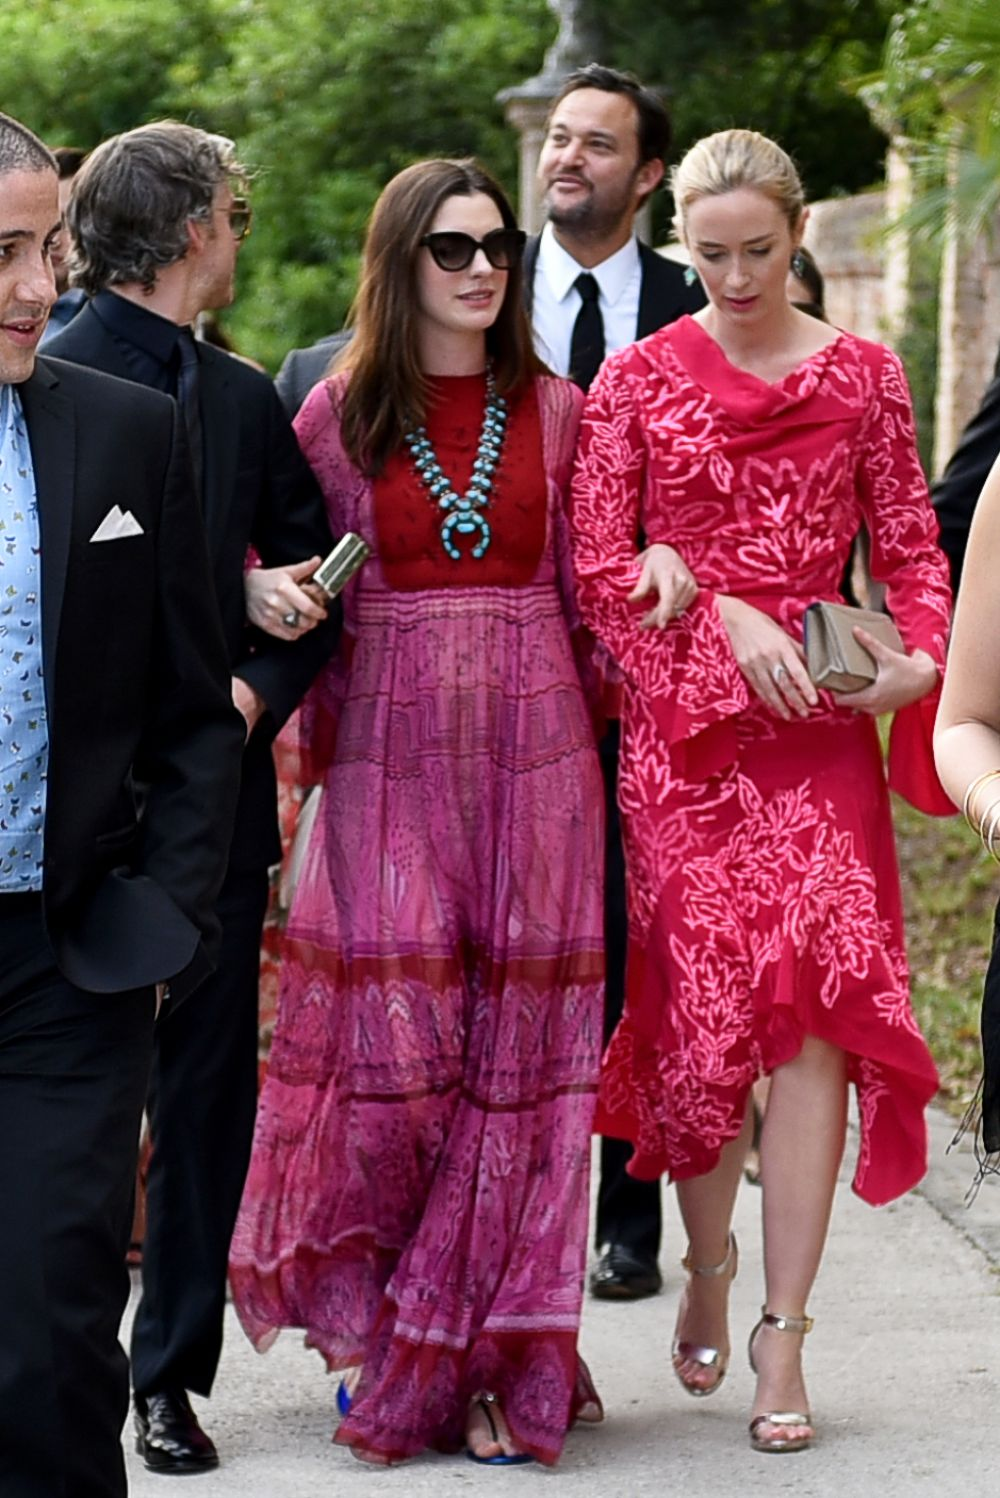 ANNE HATHAWAY and EMILY BLUNT at Jessica Chastain